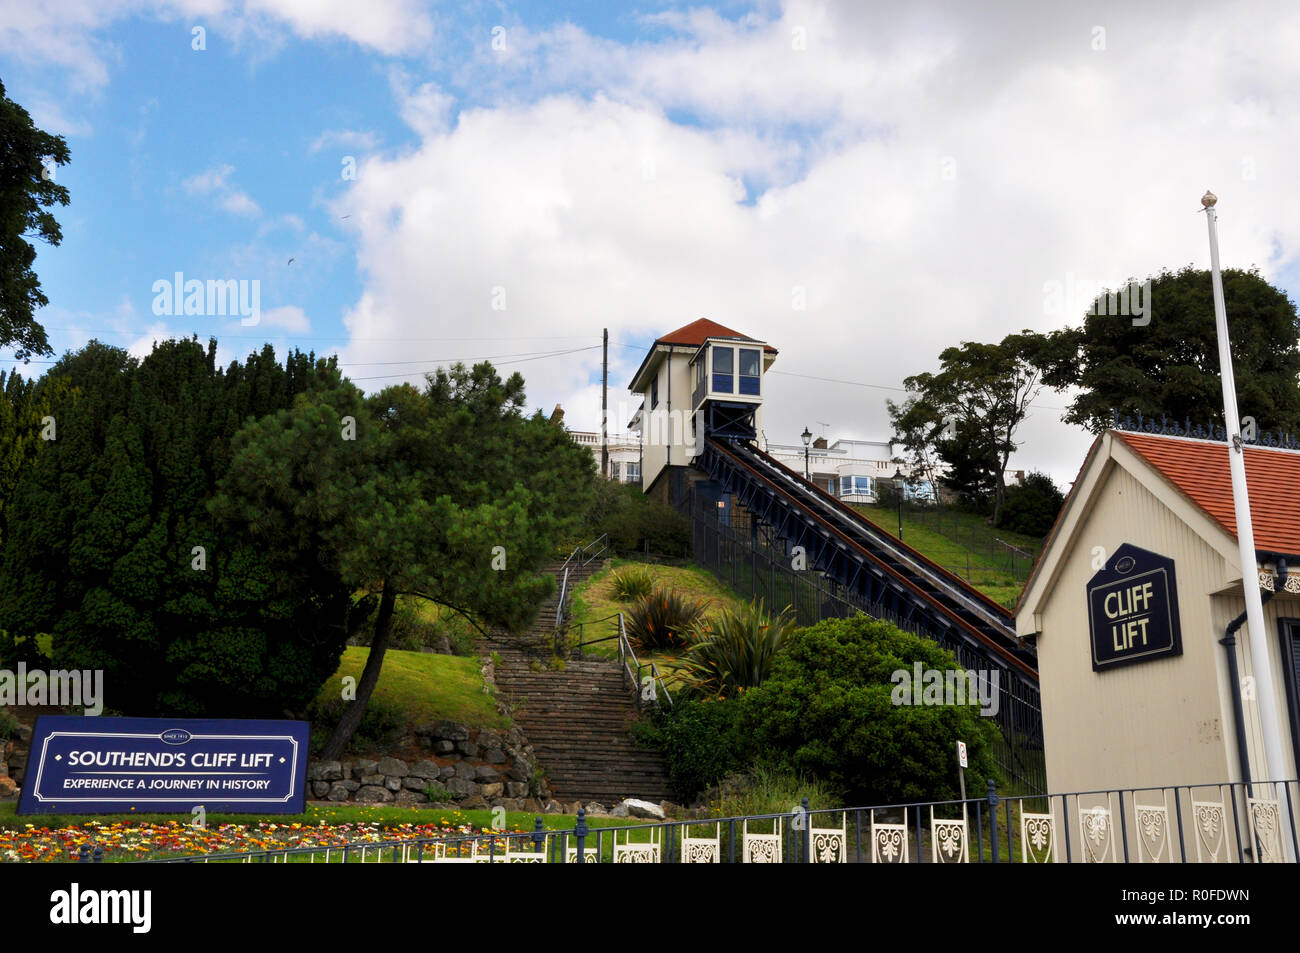 Southend on Sea Cliff Lift with sign saying Southend's Cliff Lift experience a journey in history. A funicular railway up cliffs with gardens - Stock Image